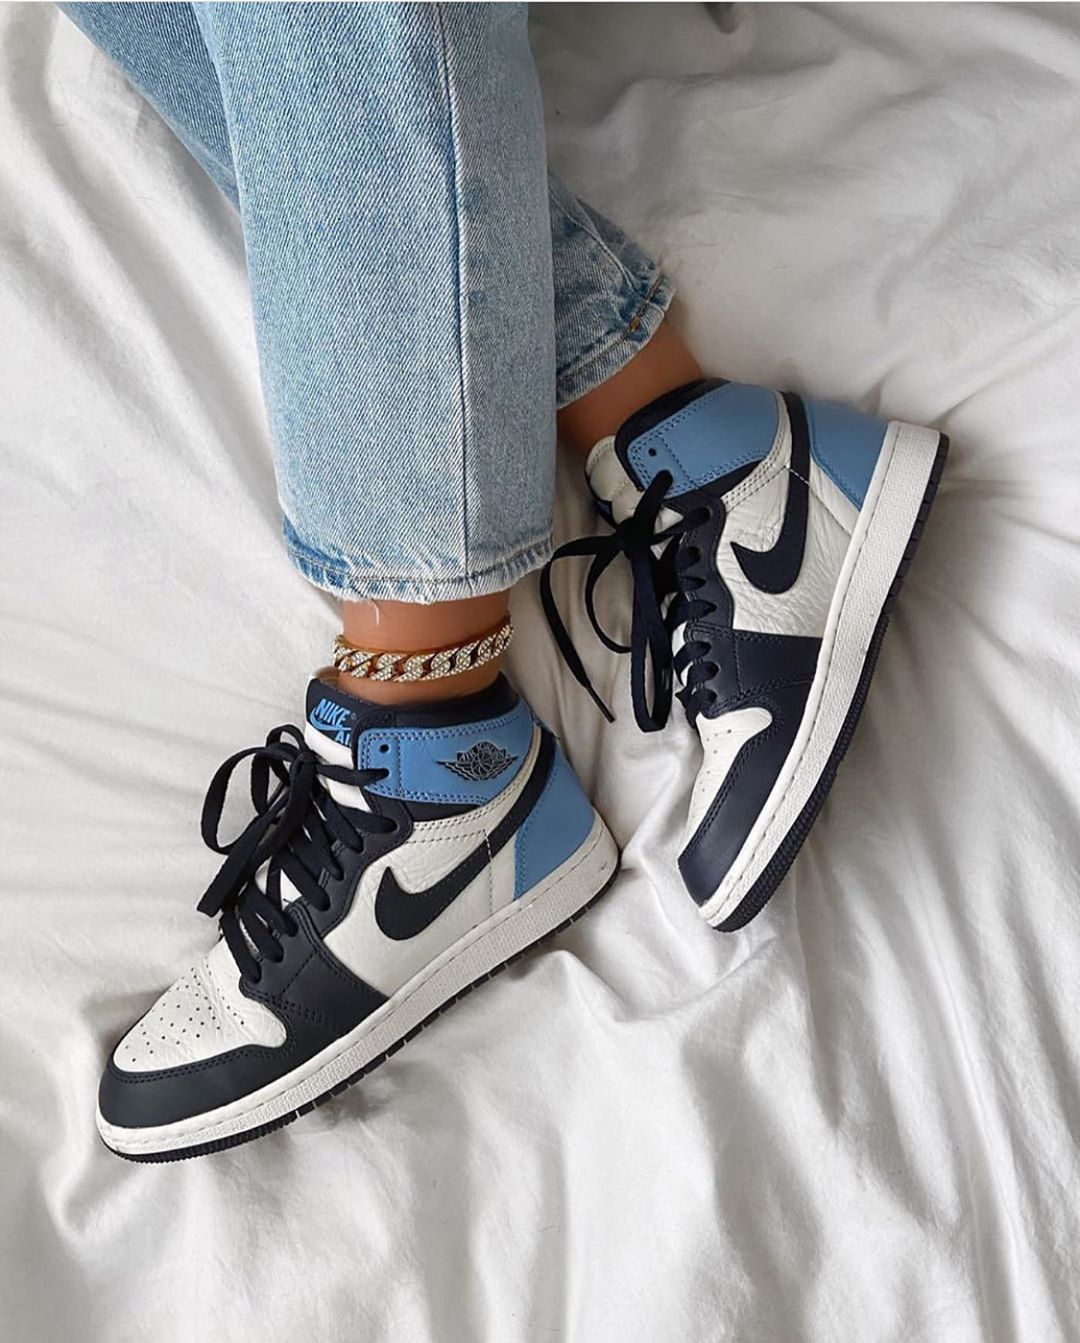 Jordan 1 Retro High Obsidian UNC#high #jordan #obsidian #retro #unc